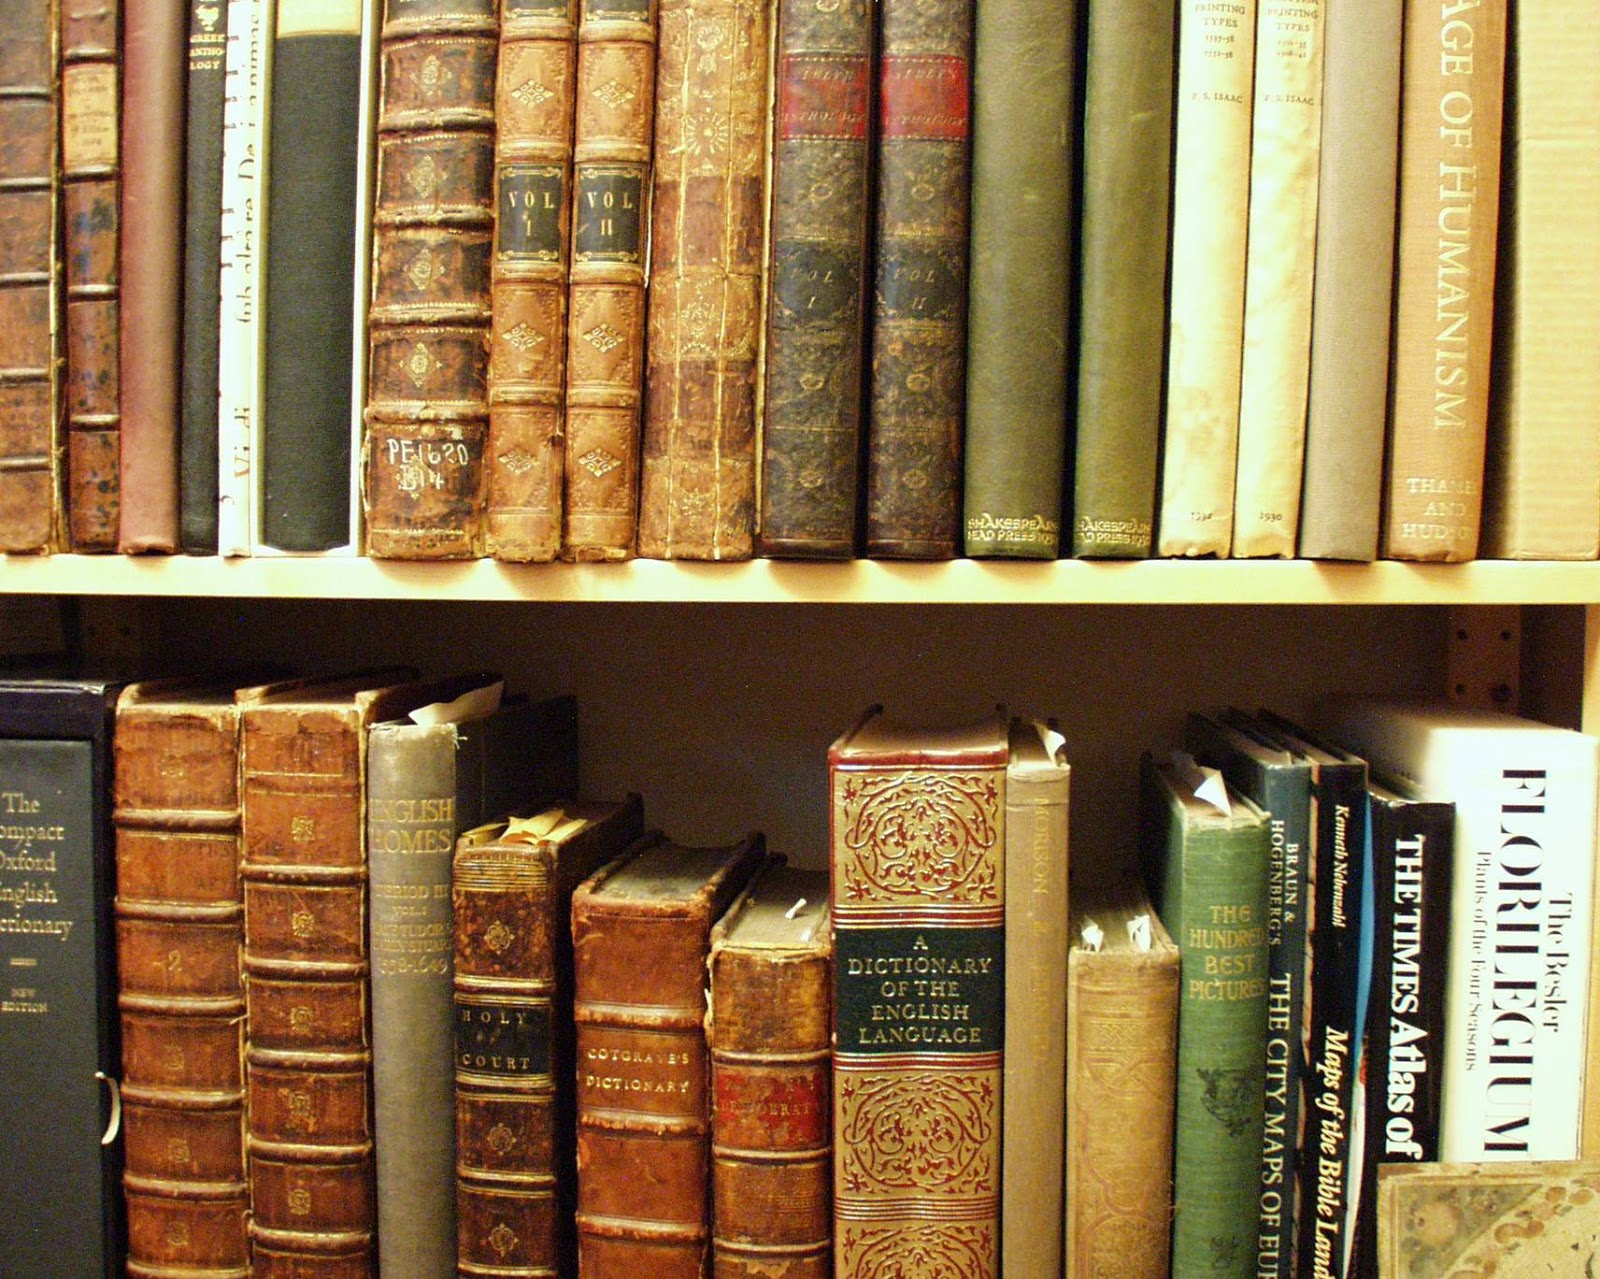 Books Magazines HD Wallpapers Hd Wallpaper Desktop Free For Backgrounds Magazin